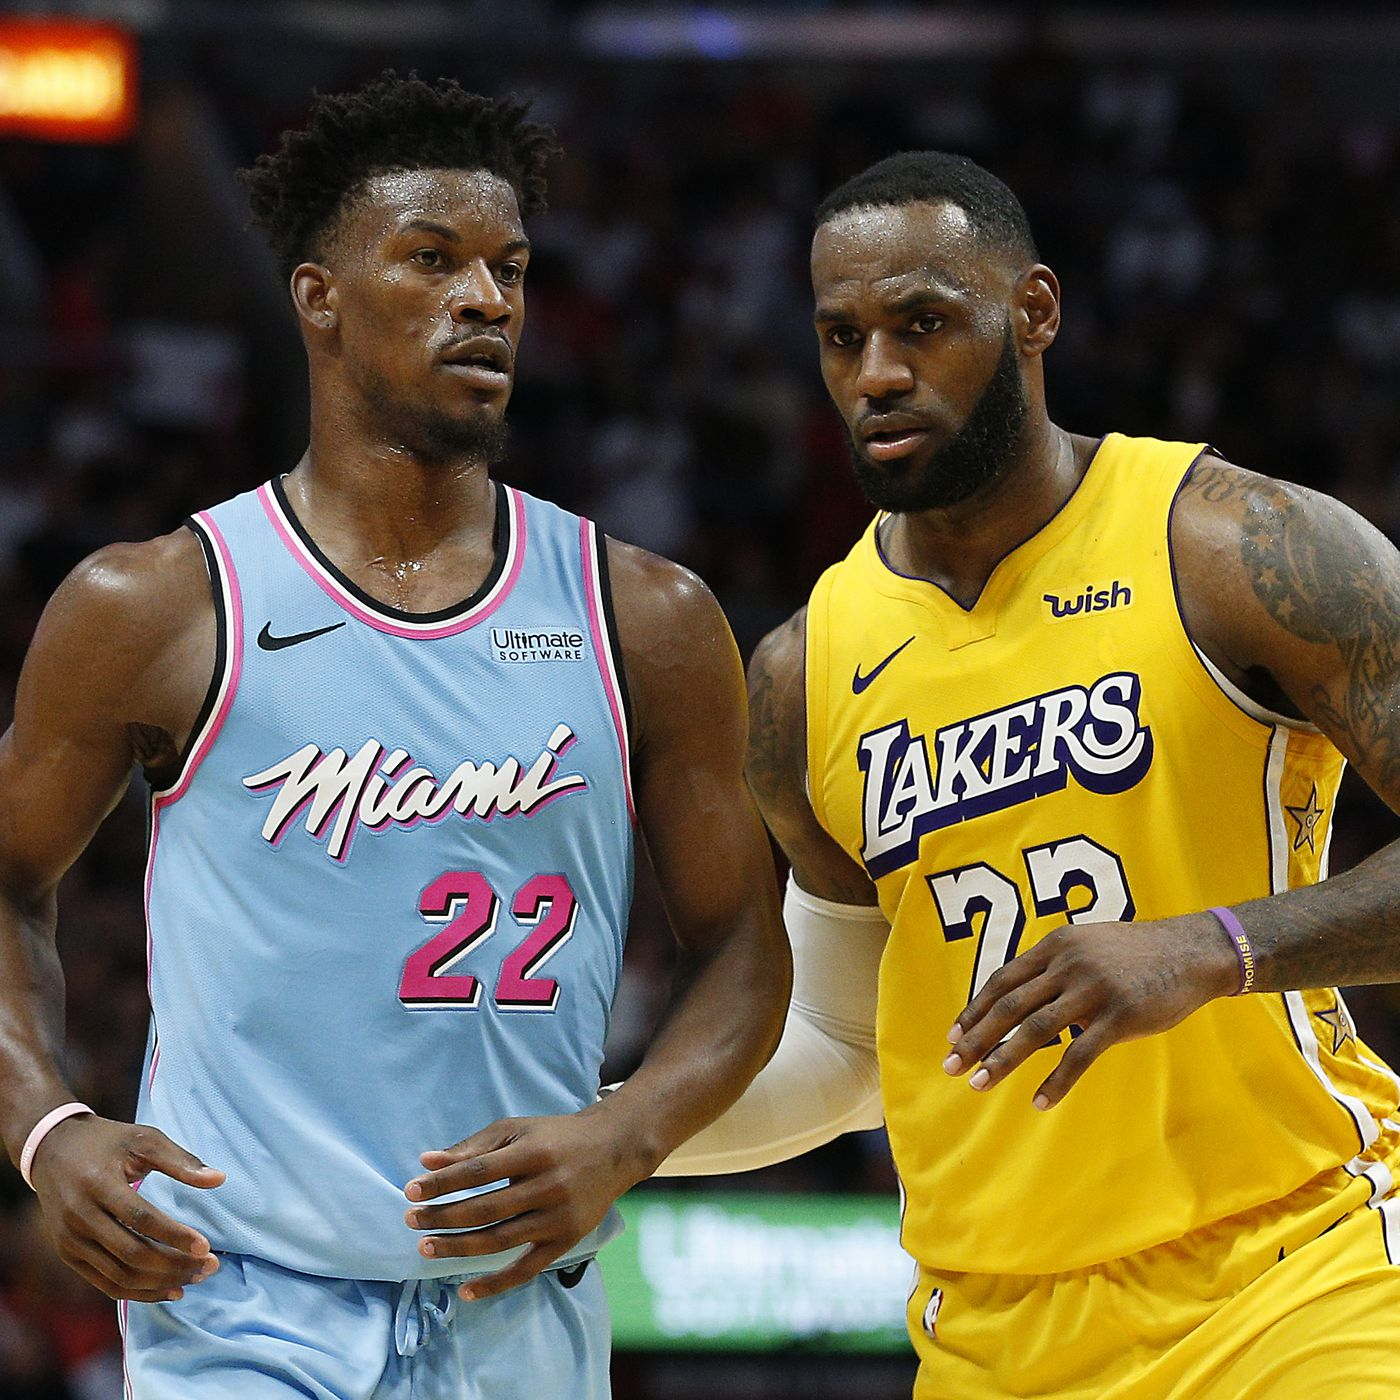 Nba finals odds betting lines dime superfecta betting on preakness